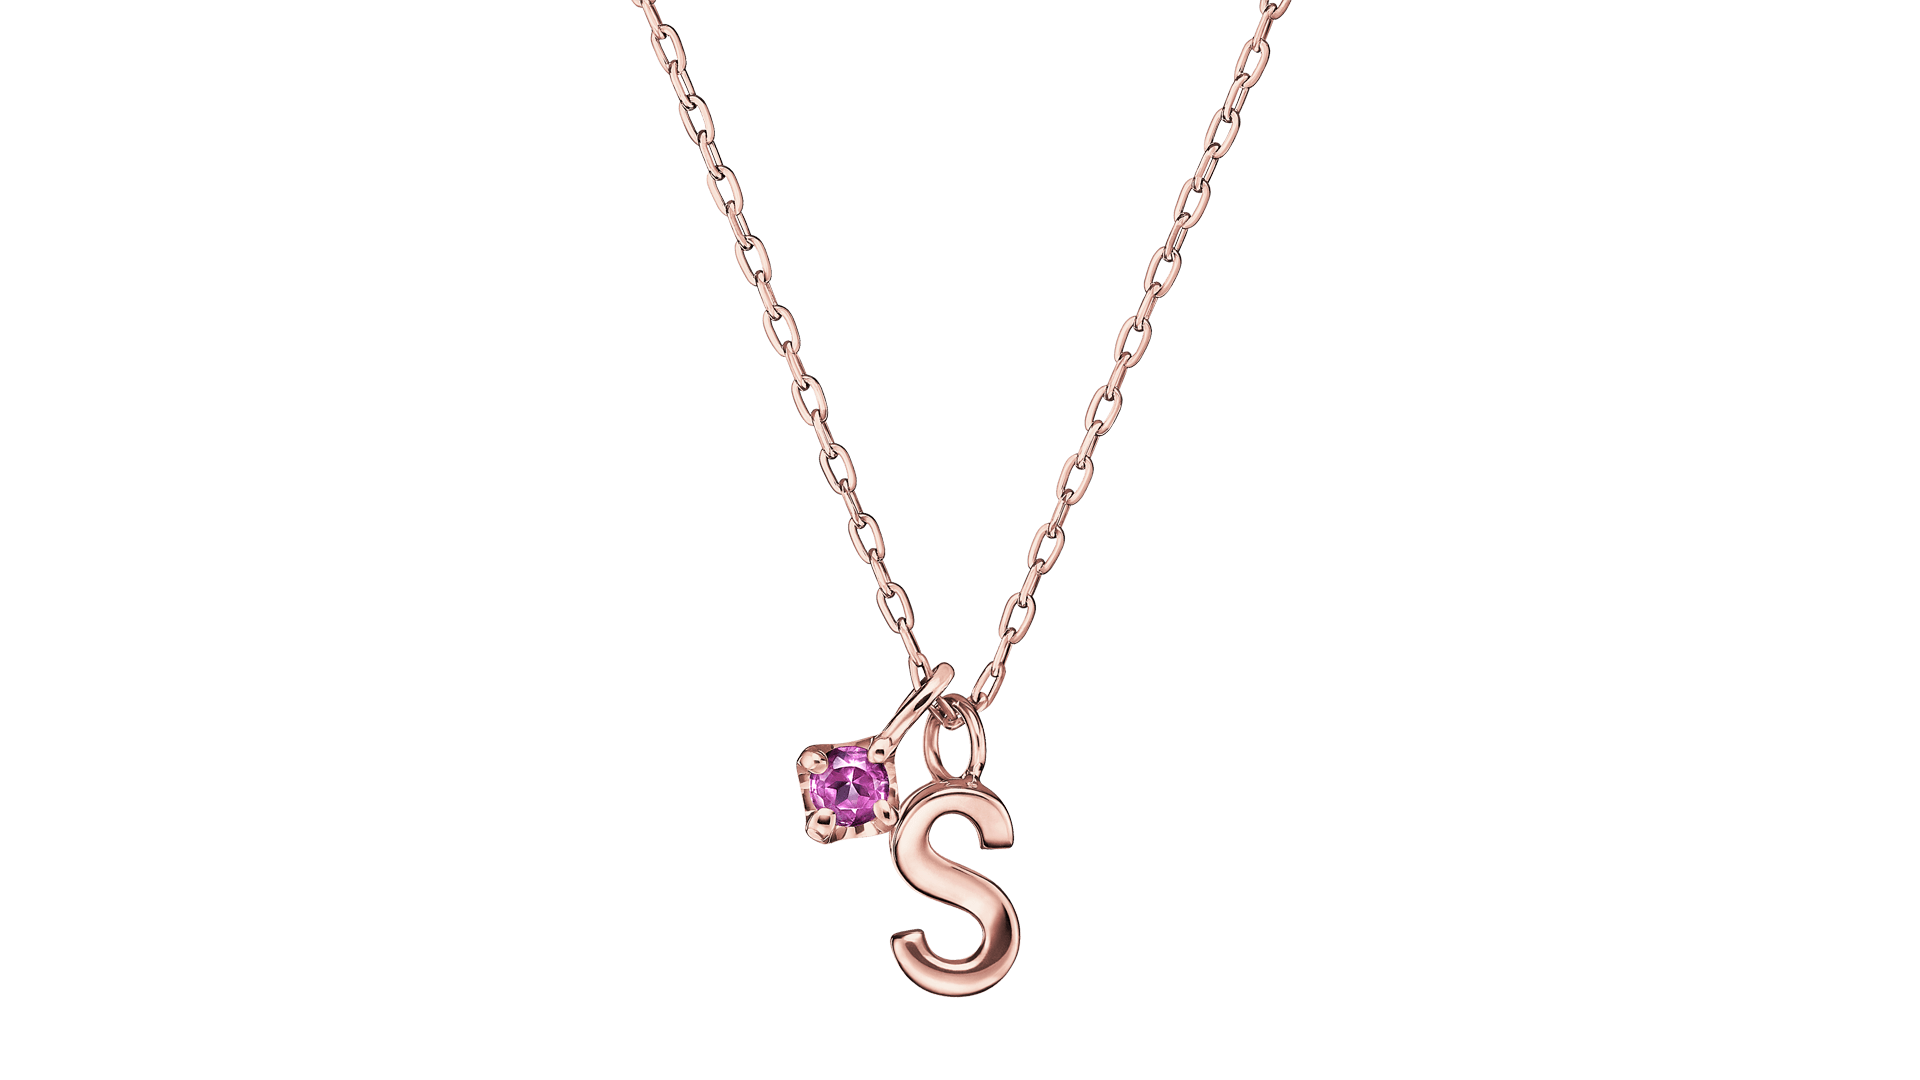 Personal Necklace パーソナルネックレス | アニバーサリージュエリーサムネイル 2